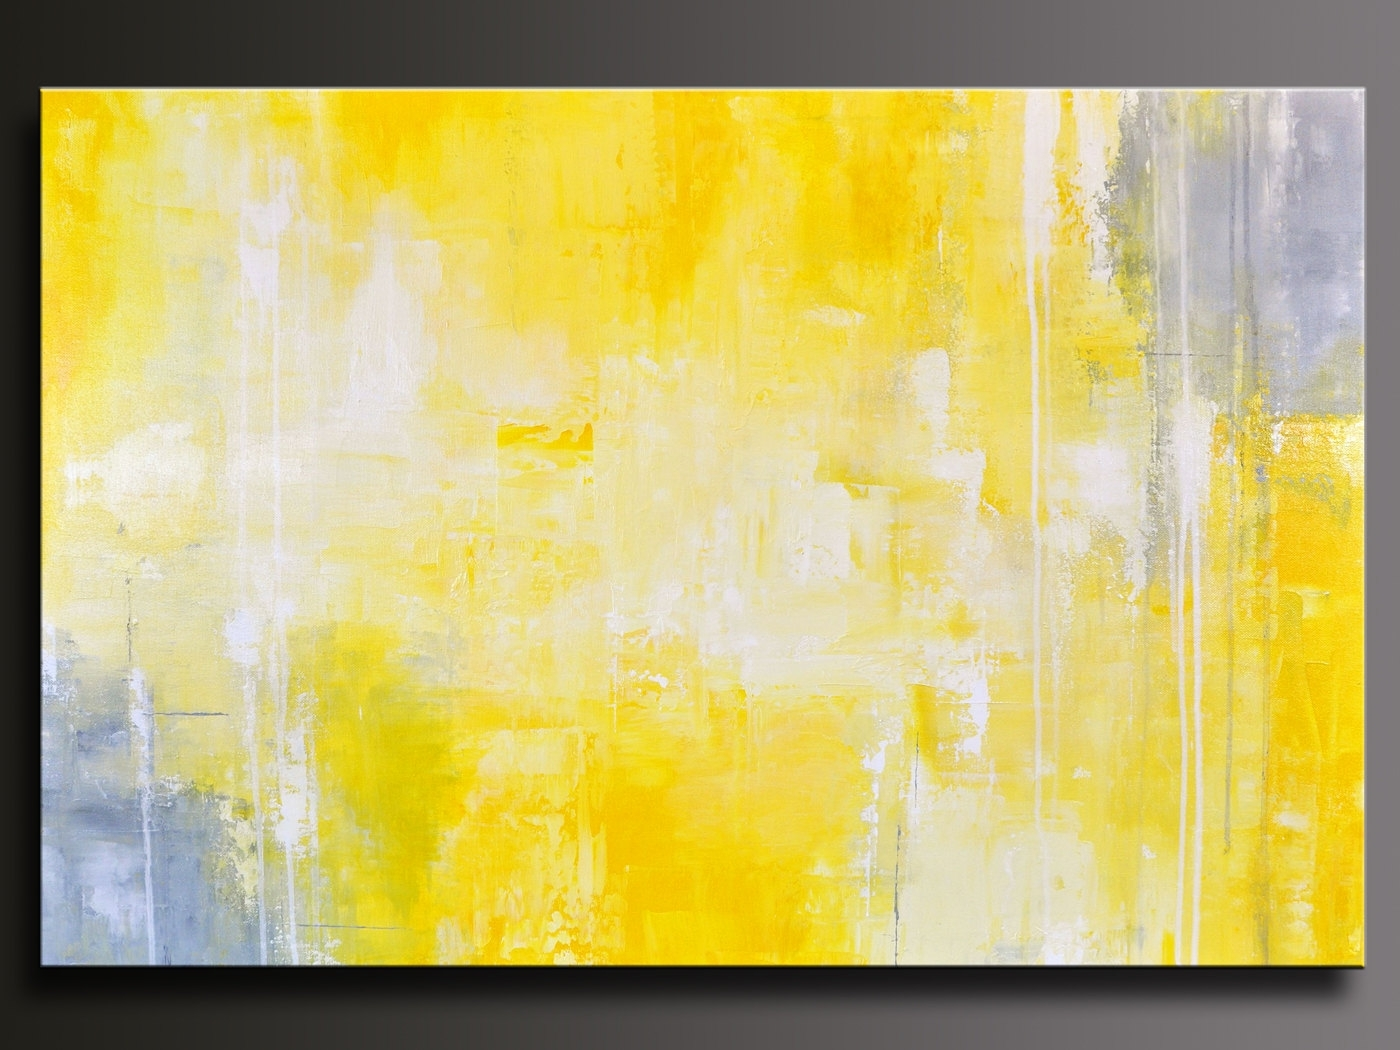 Yellow Grey Wall Art Regarding Popular Wall Art Designs: Yellow And Gray Wall Art Diy Wall Art Washington (Gallery 1 of 15)